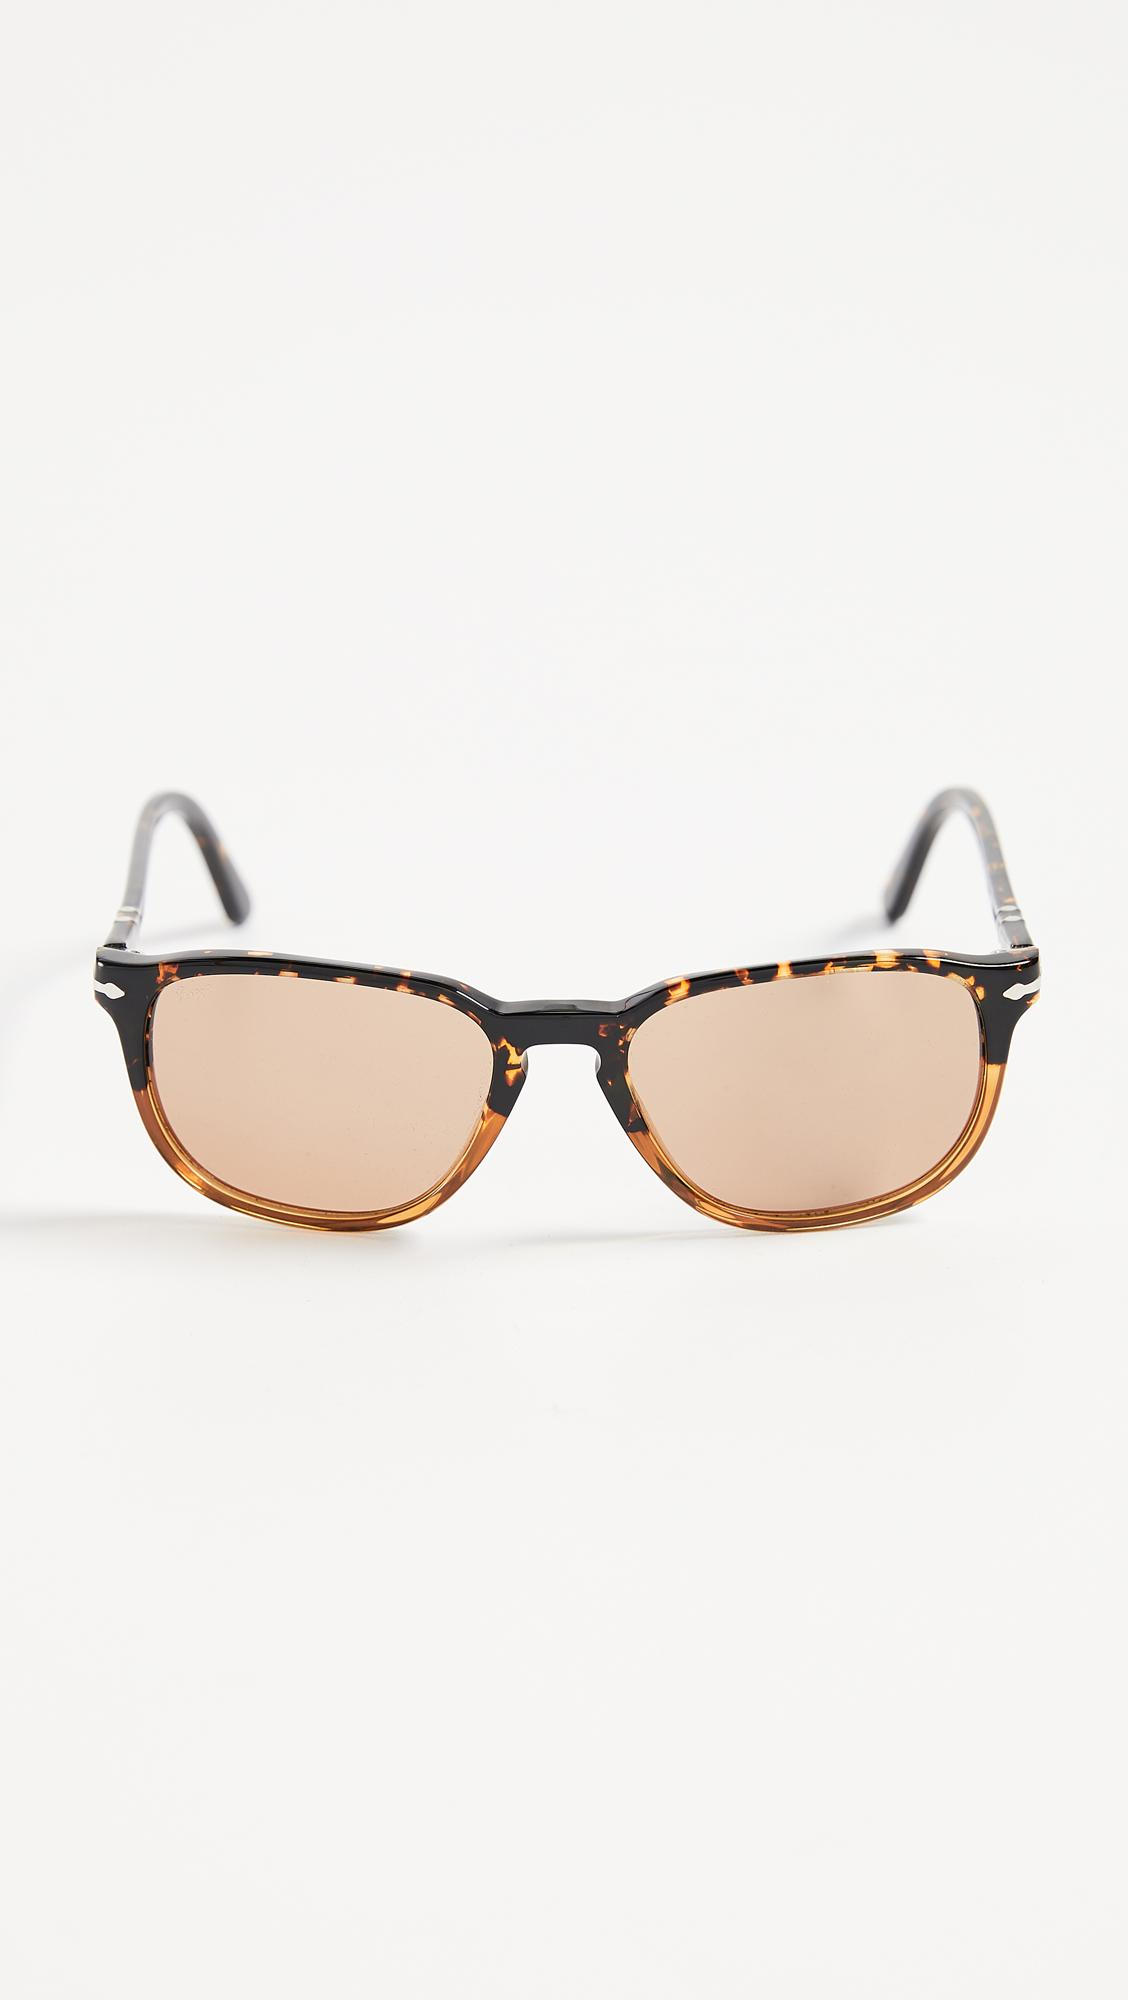 9bd8e41767429 Lyst - Persol Gradient Tortoise Sunglasses in Brown for Men